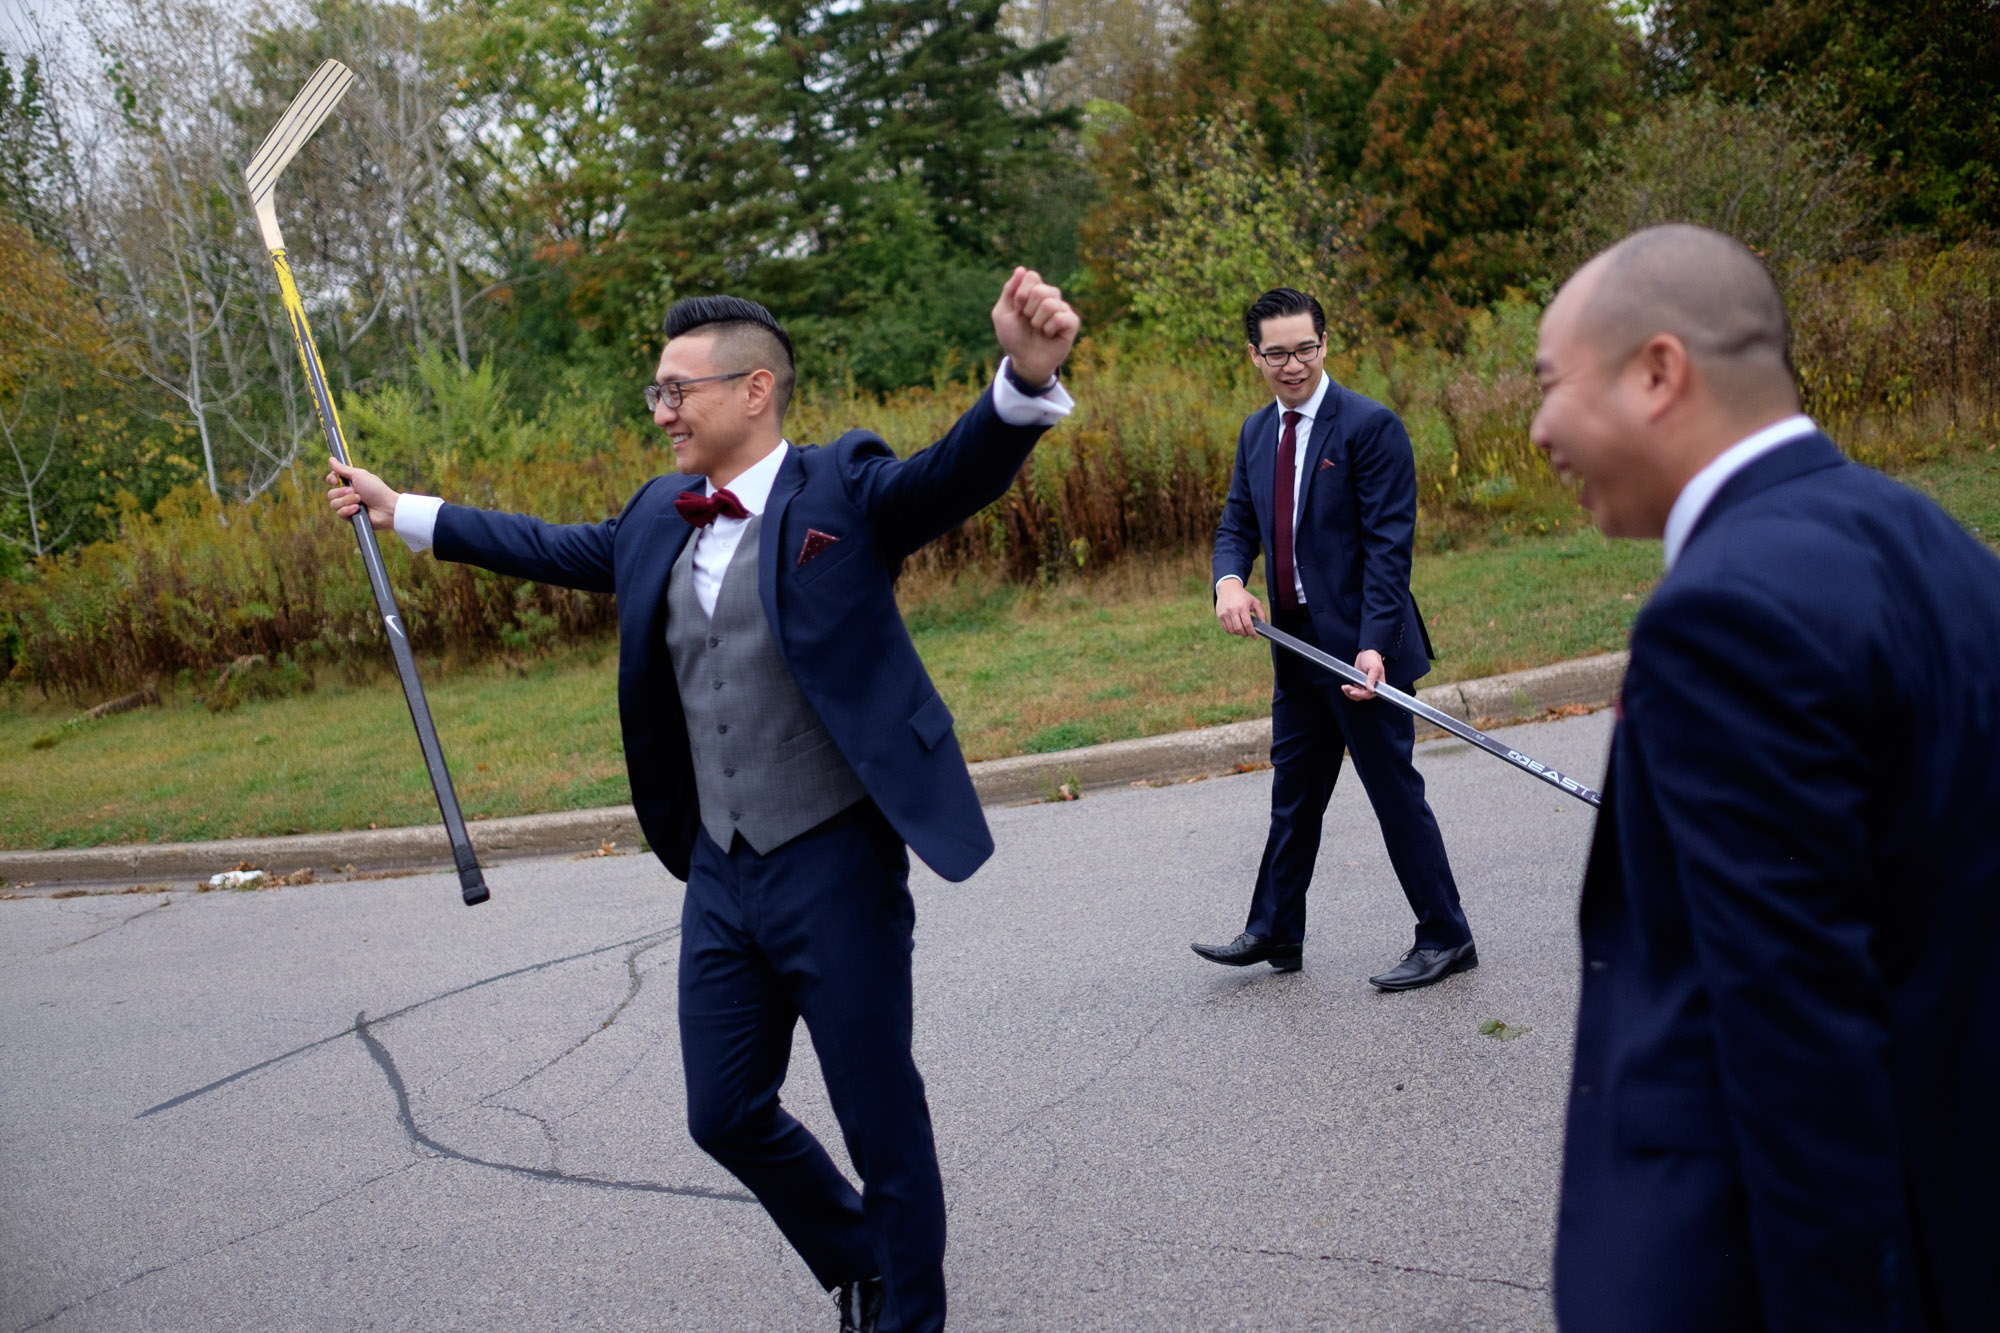 Chris plays road hockey with his groomsmen before his wedding at Madsens Greenhouse.